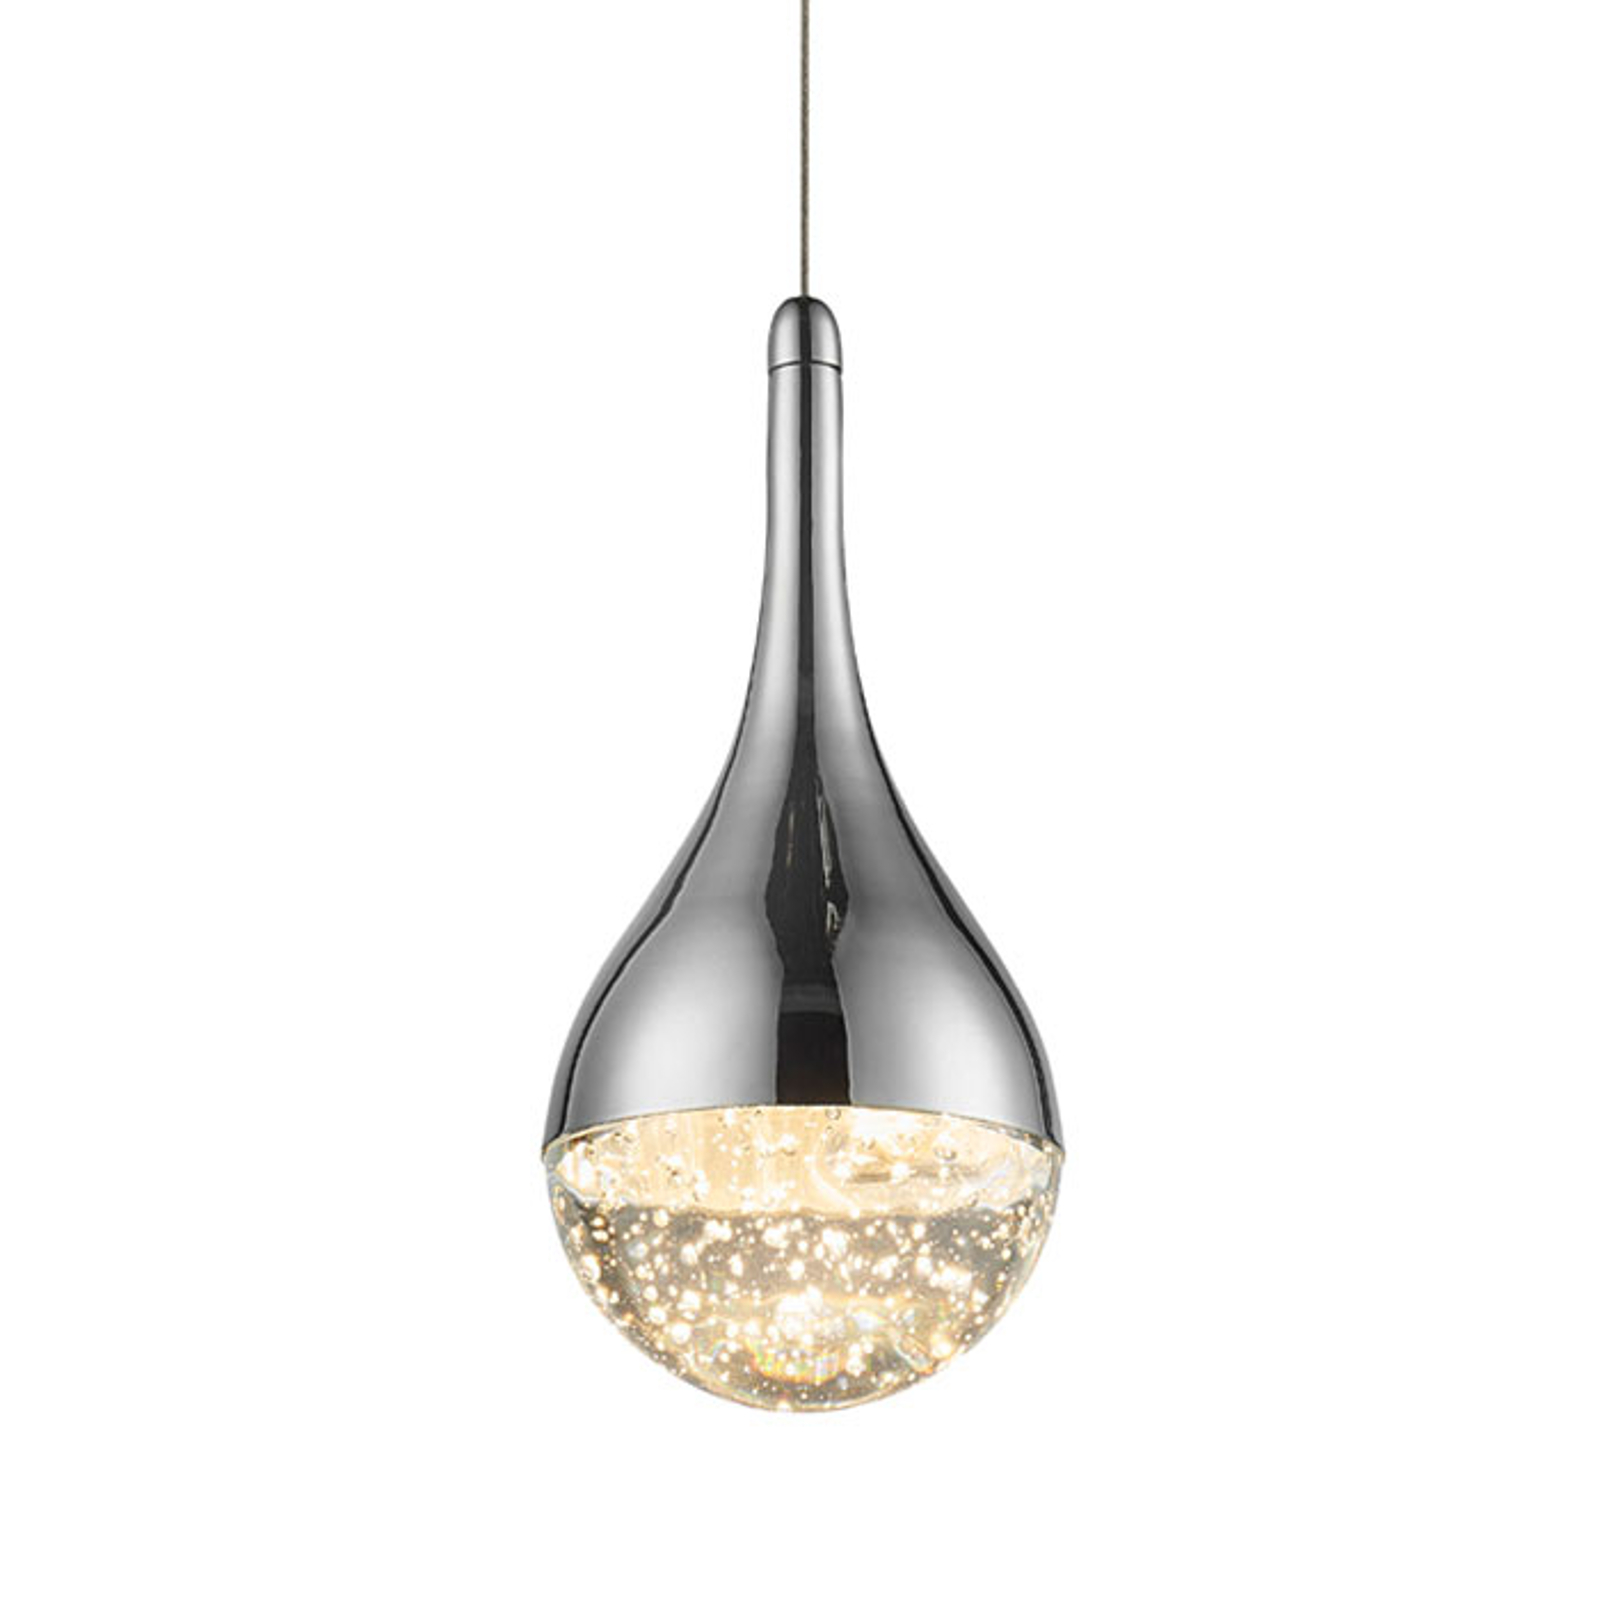 LED hanglamp Elie, 1-lamp